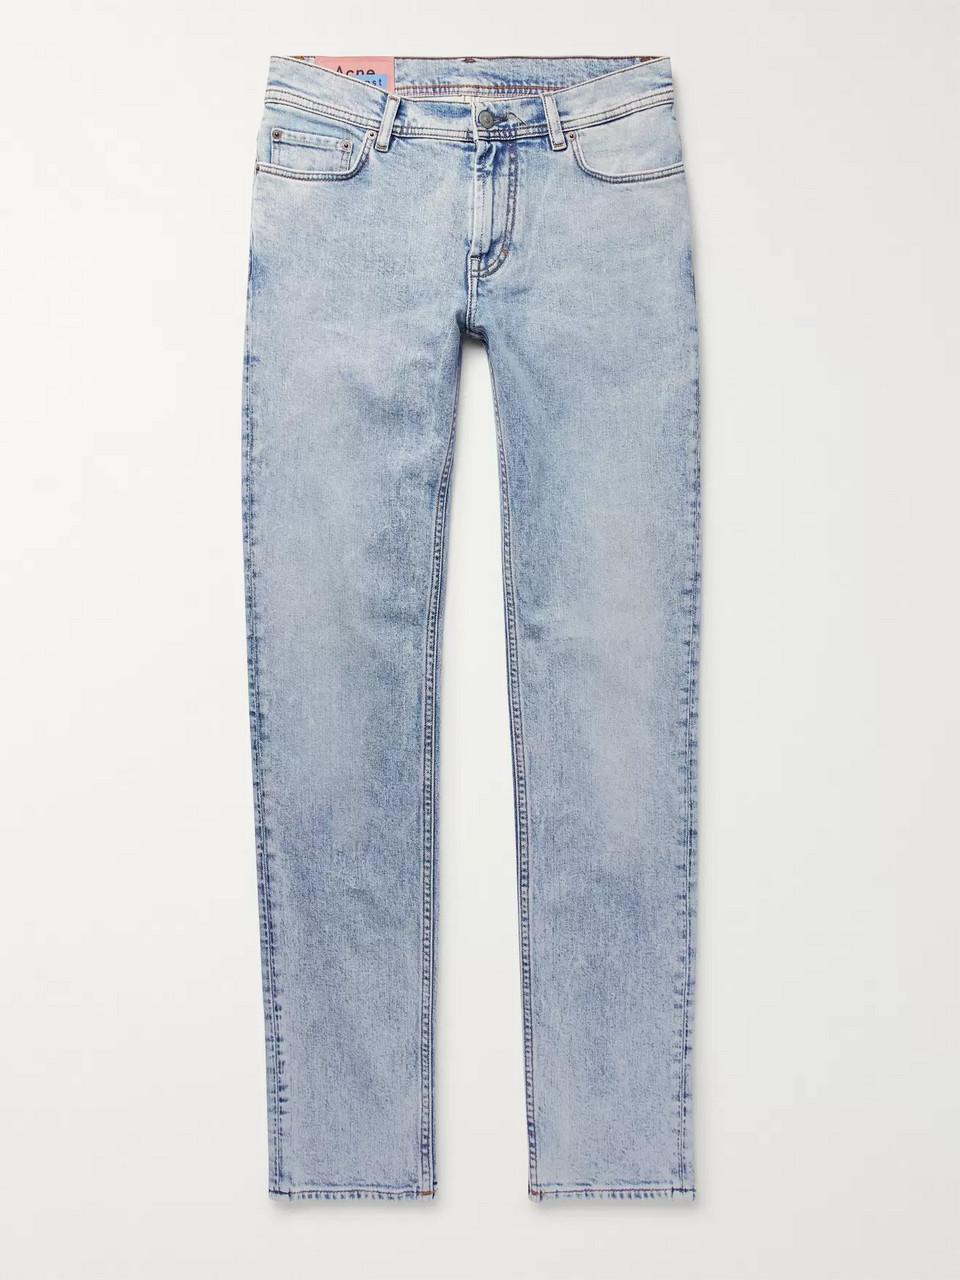 Acne Studios North Skinny-Fit Denim Jeans